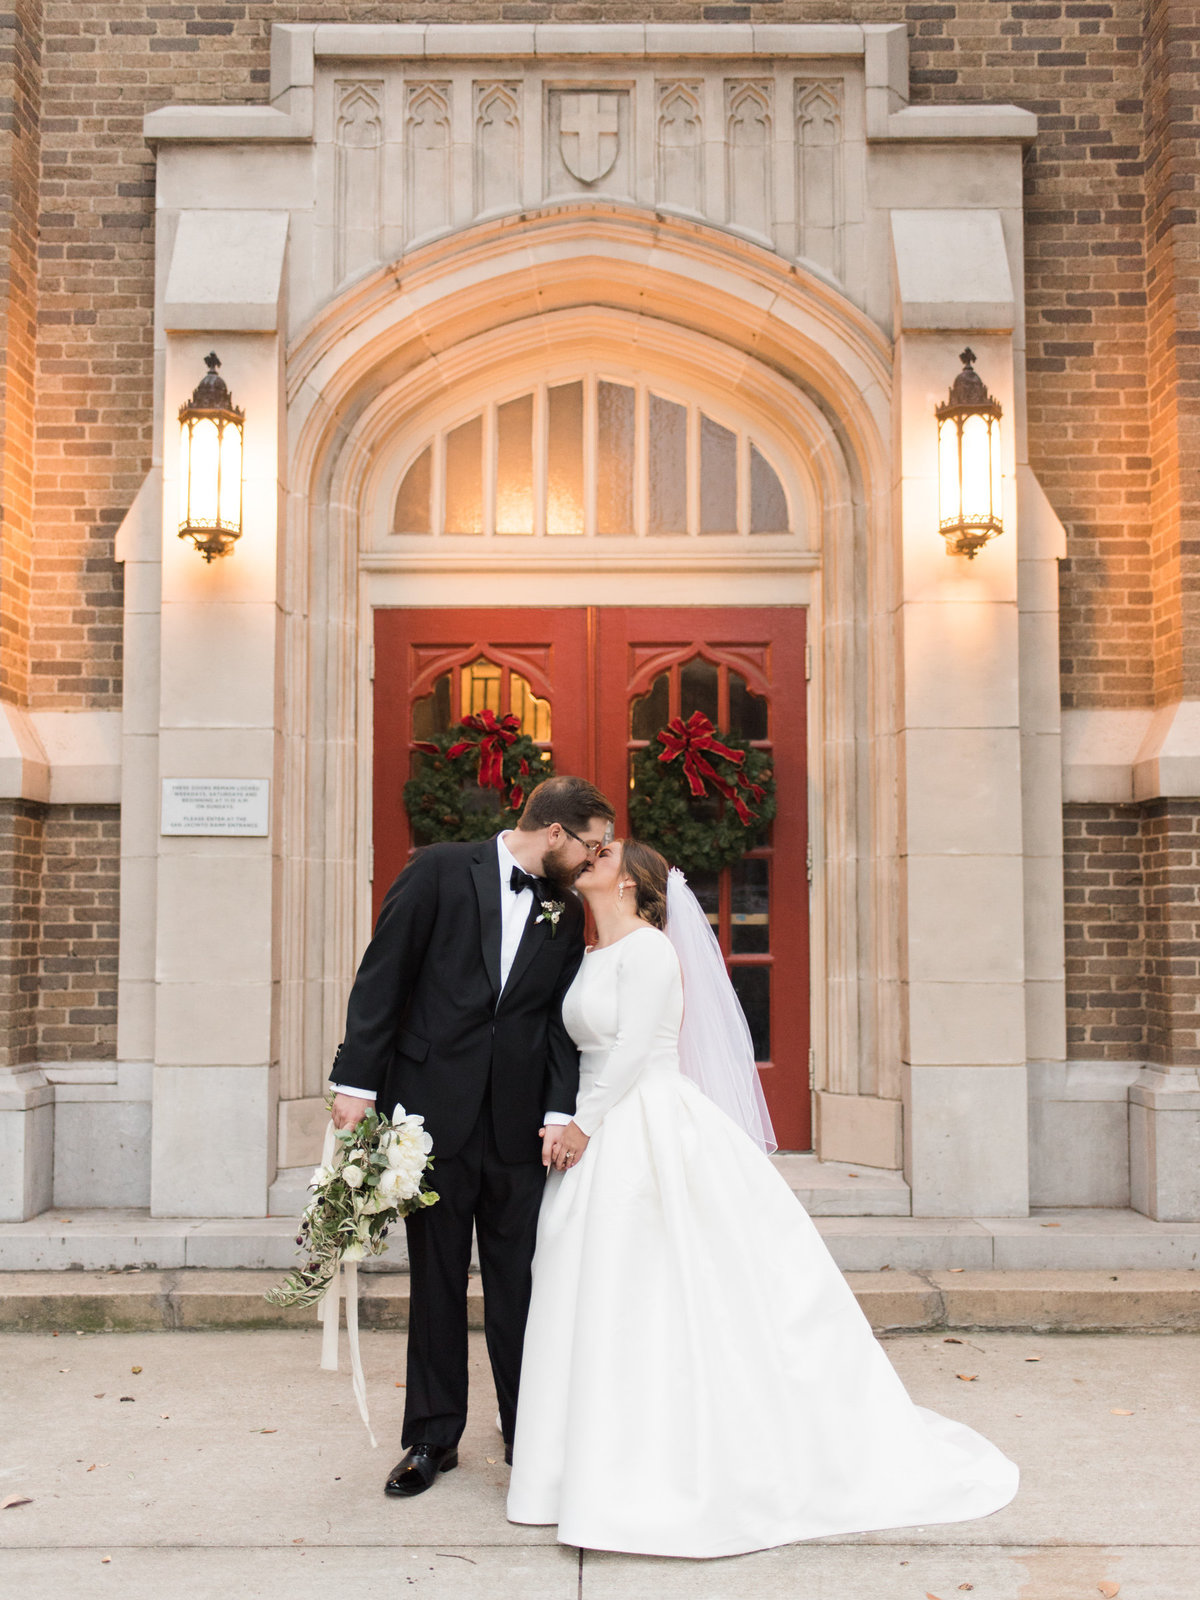 Courtney Hanson Photography - Festive Holiday Wedding in Dallas at Hickory Street Annex-0227